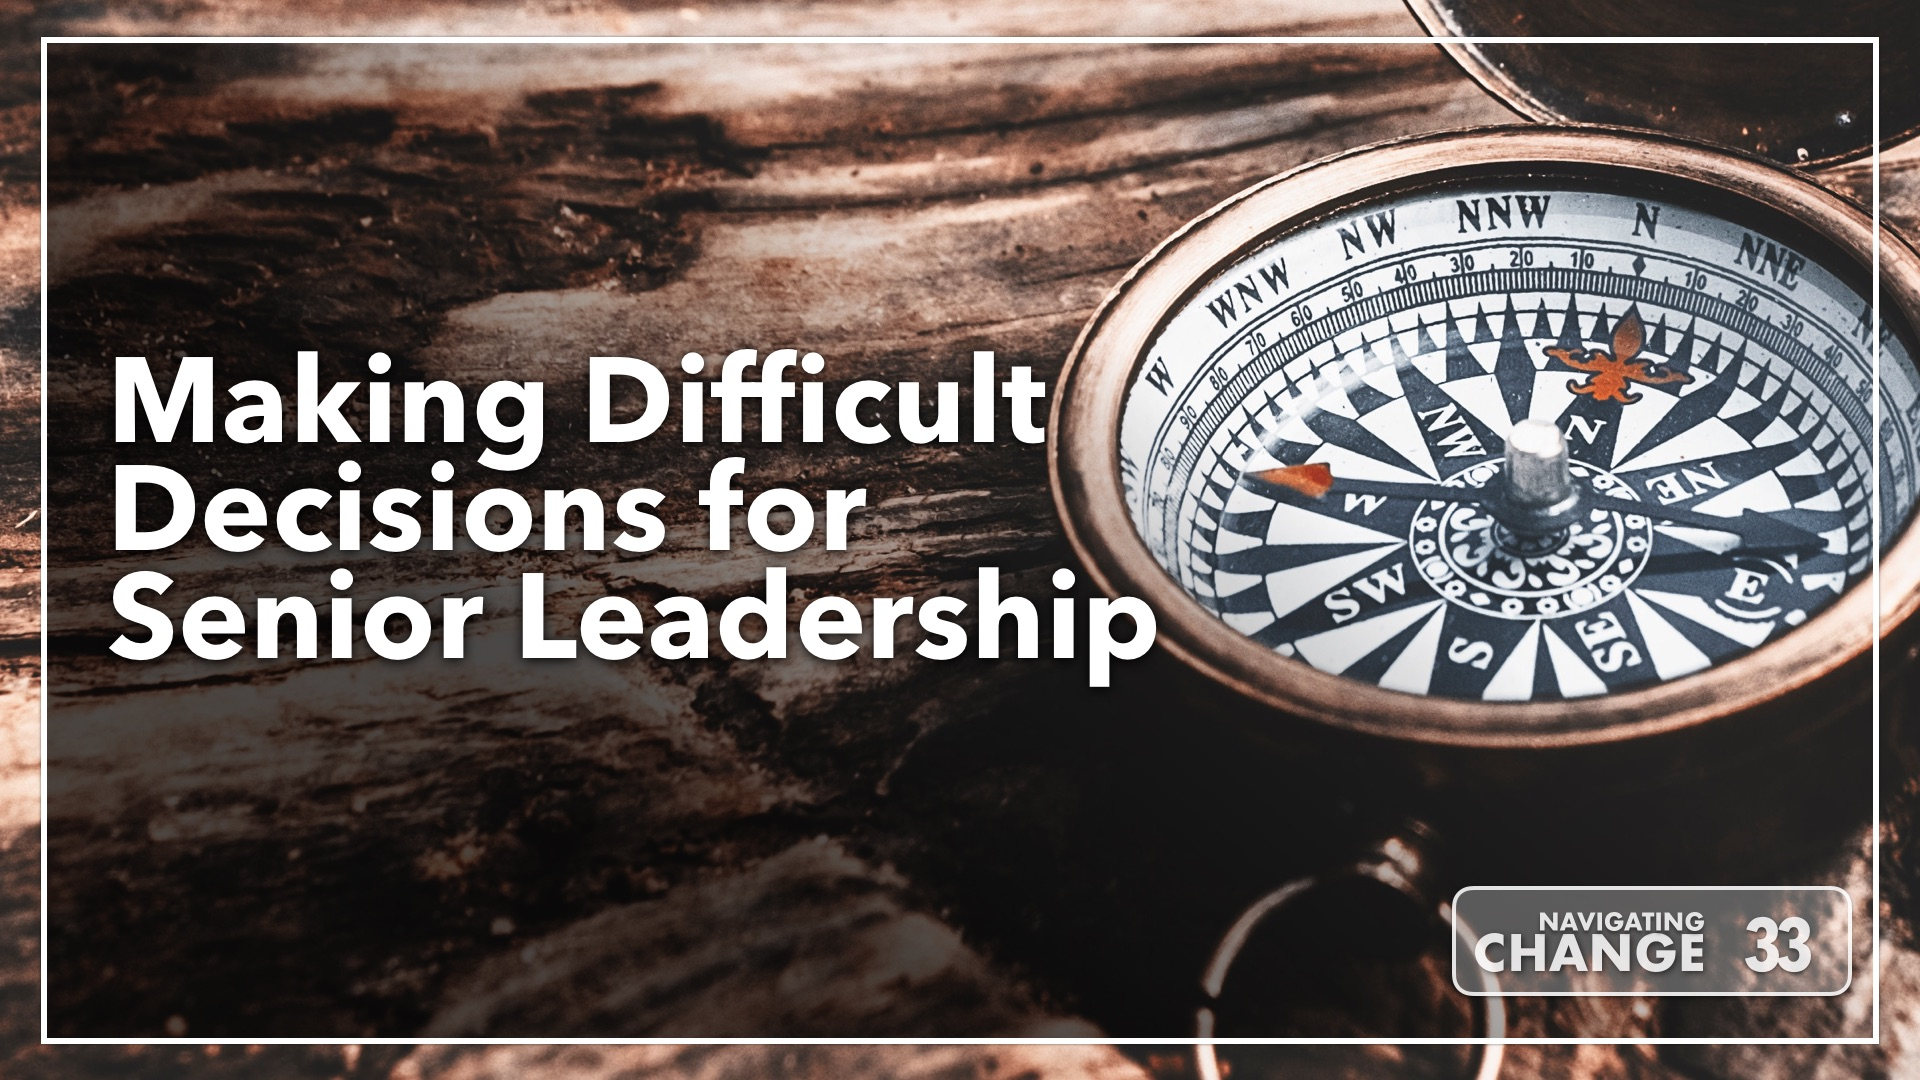 Listen to Decision Making for Senior Leadership on Navigating Change The Education Podcast